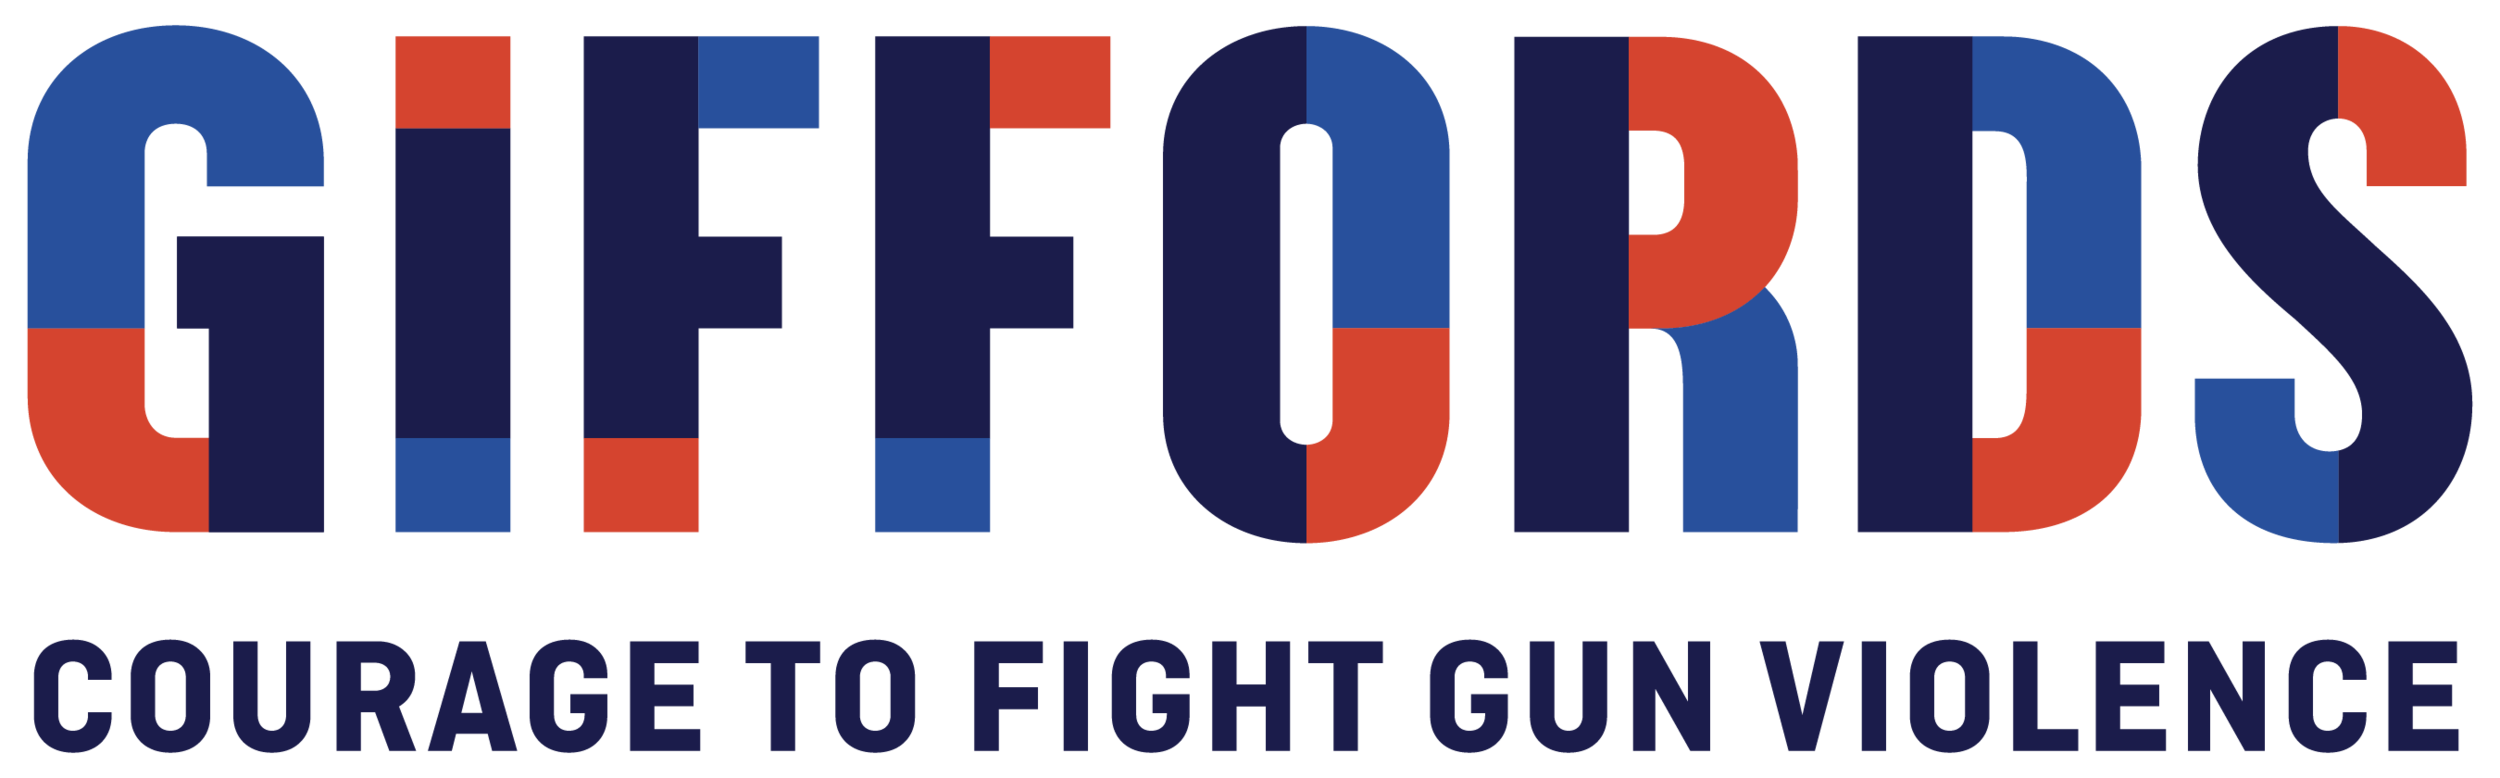 Giffords_Logo_Primary_RGB.png